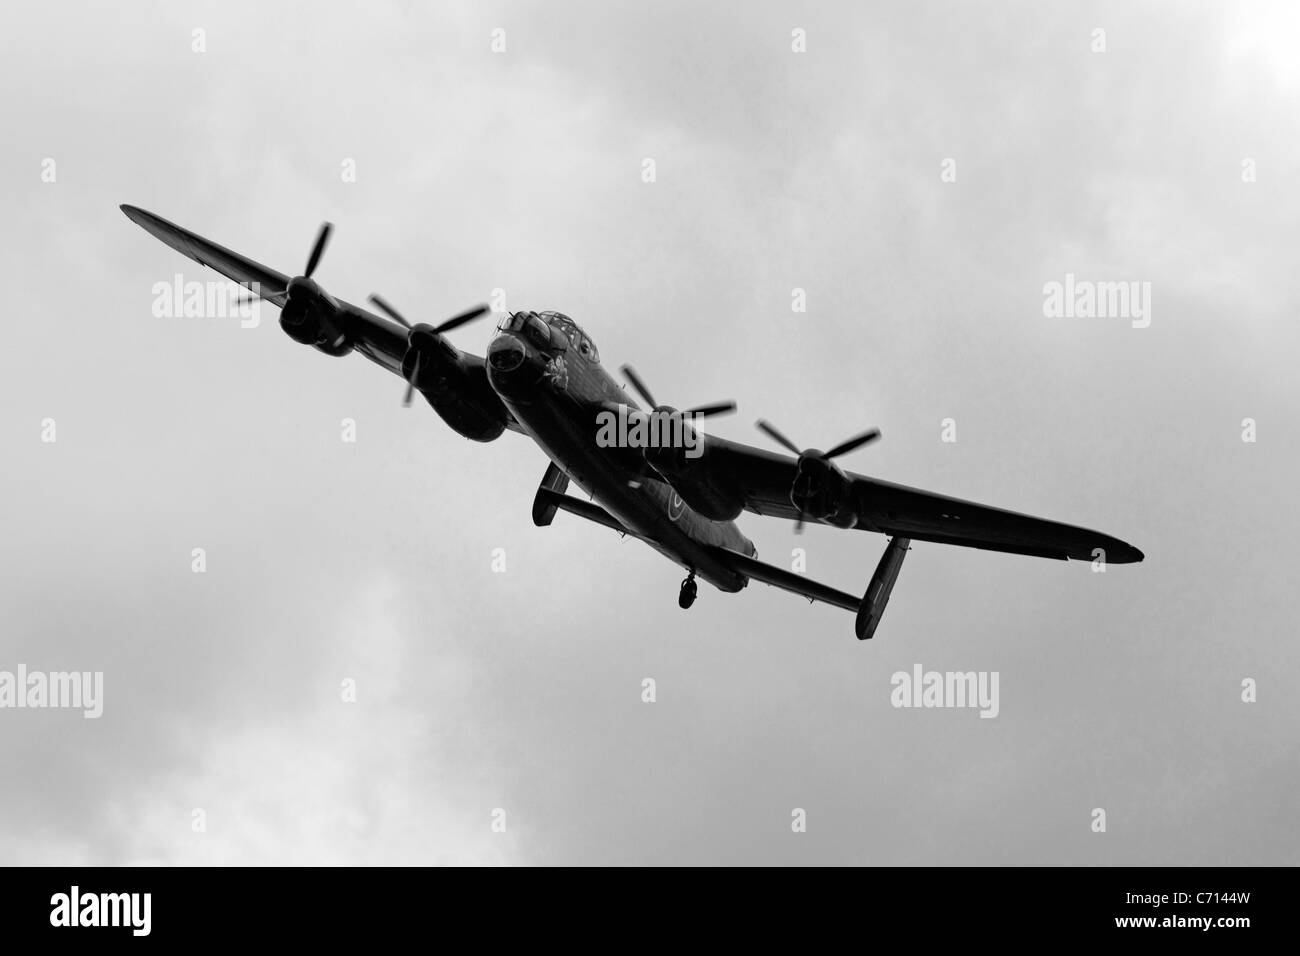 B/W WW2 British RAF Avro Lancaster Bomber Plane on a pass over an airfield during an Airshow Stock Photo